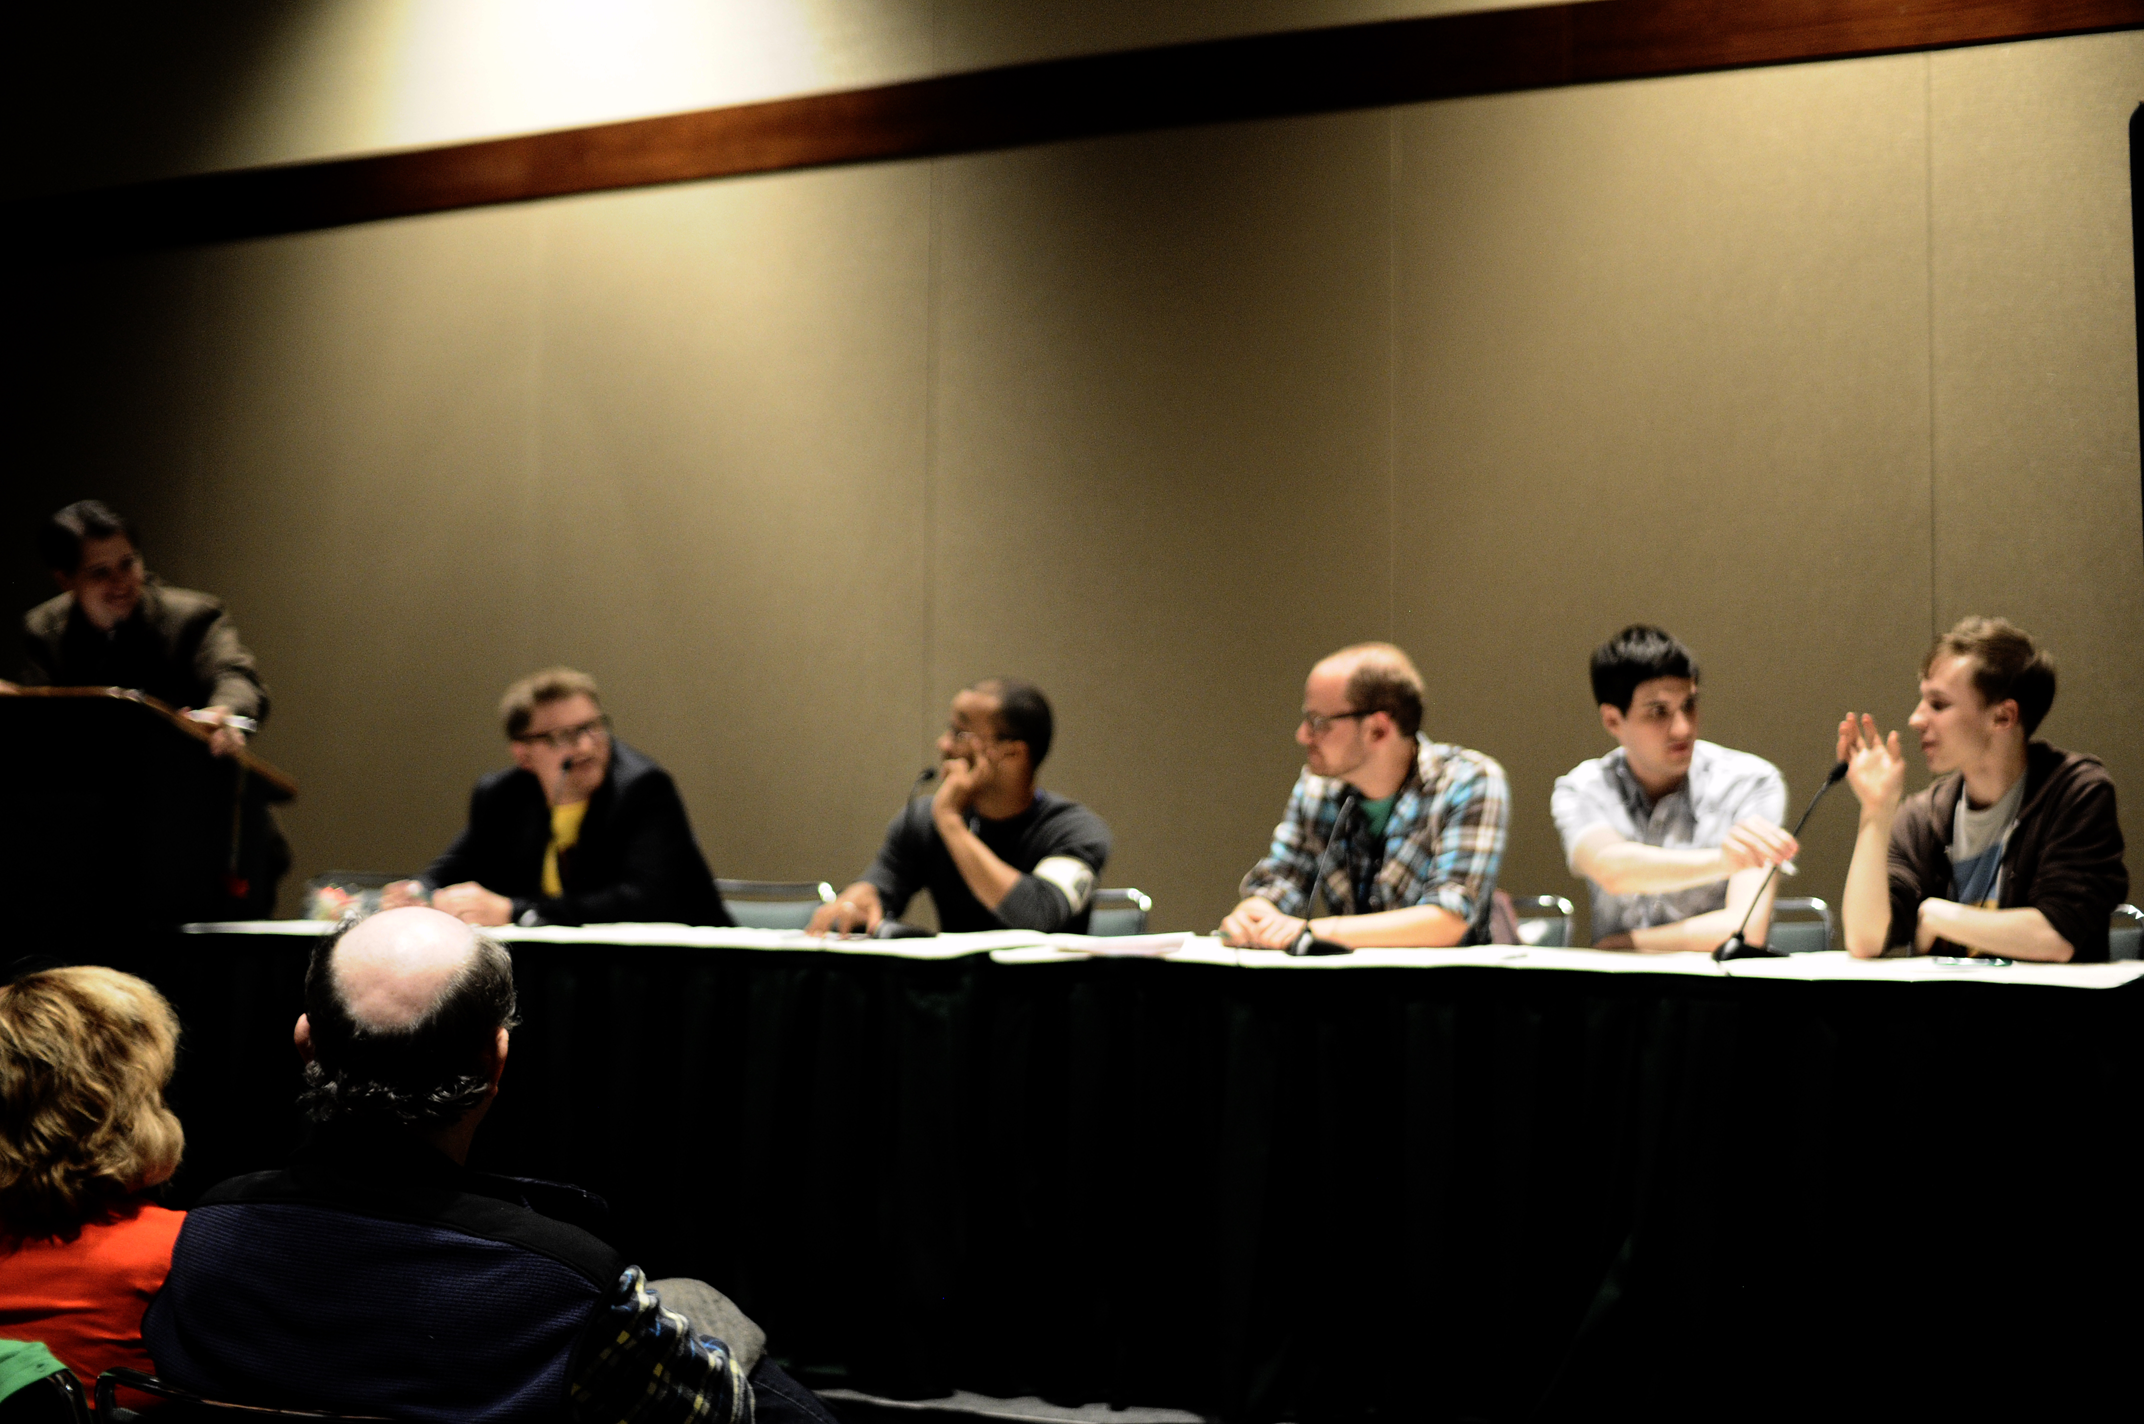 pax10_panel_the_rightmost_guy_is_olli.png